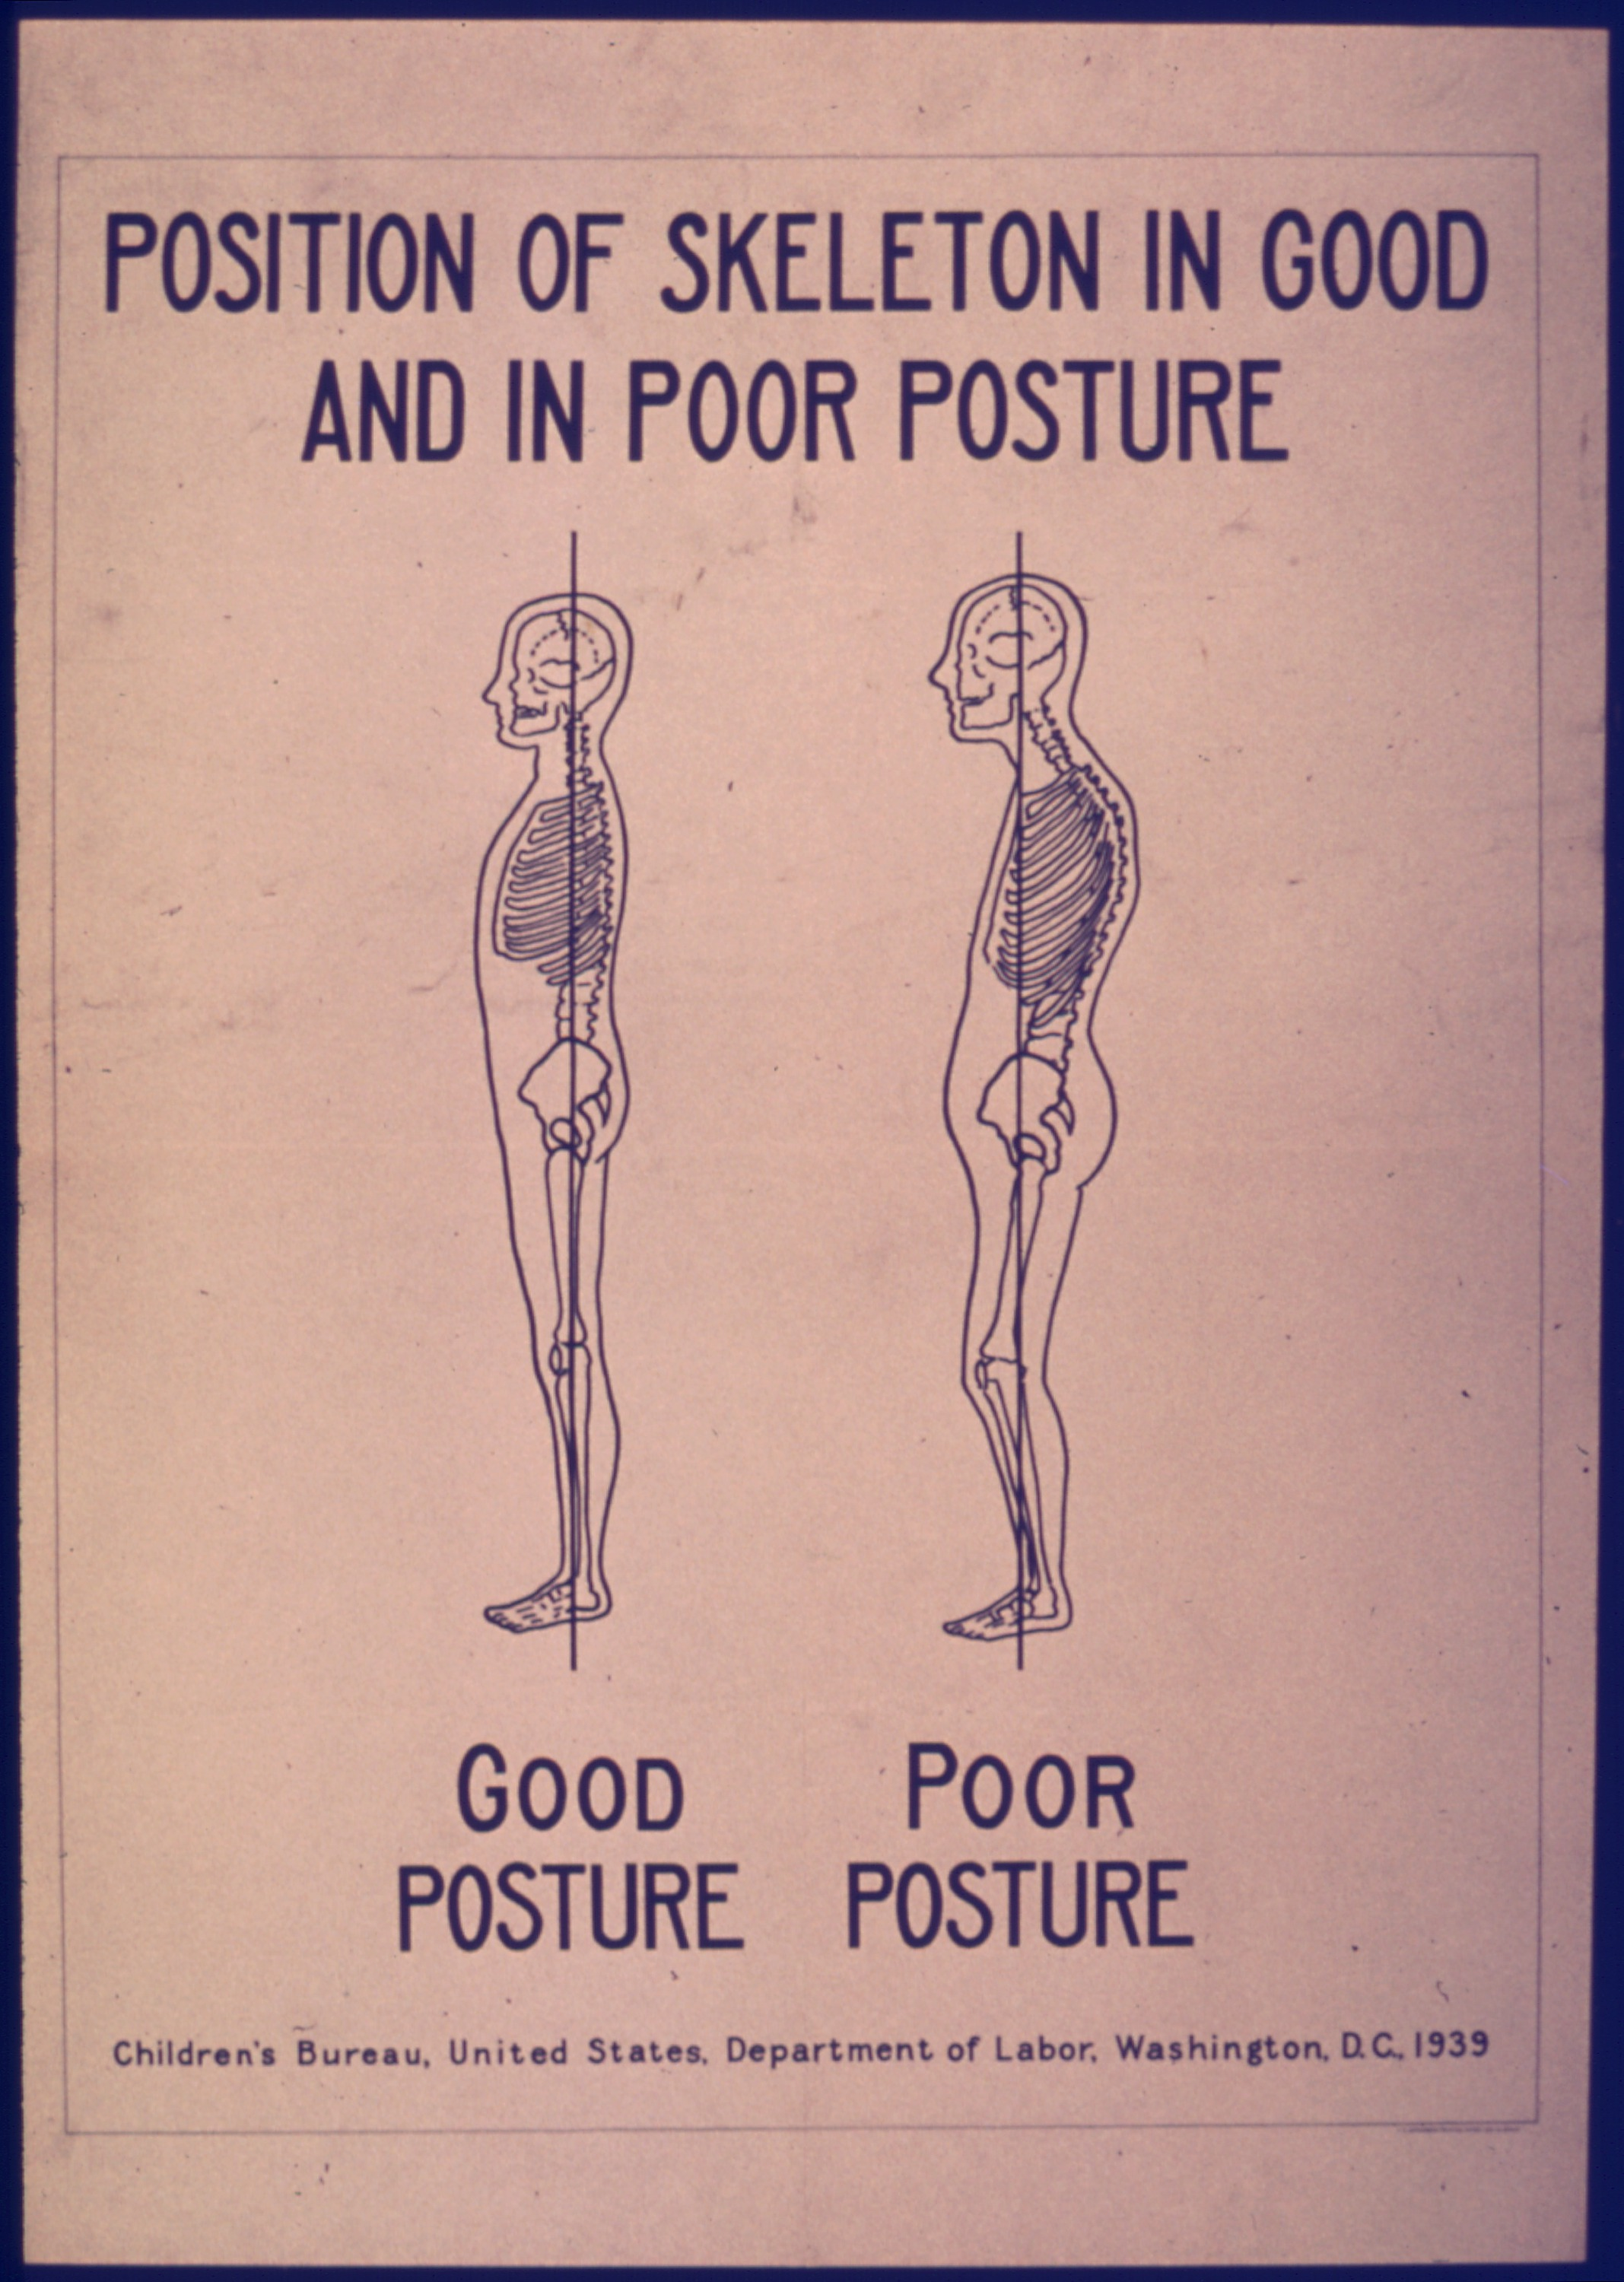 POSITION_OF_SKELETON_IN_GOOD_AND_POOR_POSTURE_-_NARA_-_515194